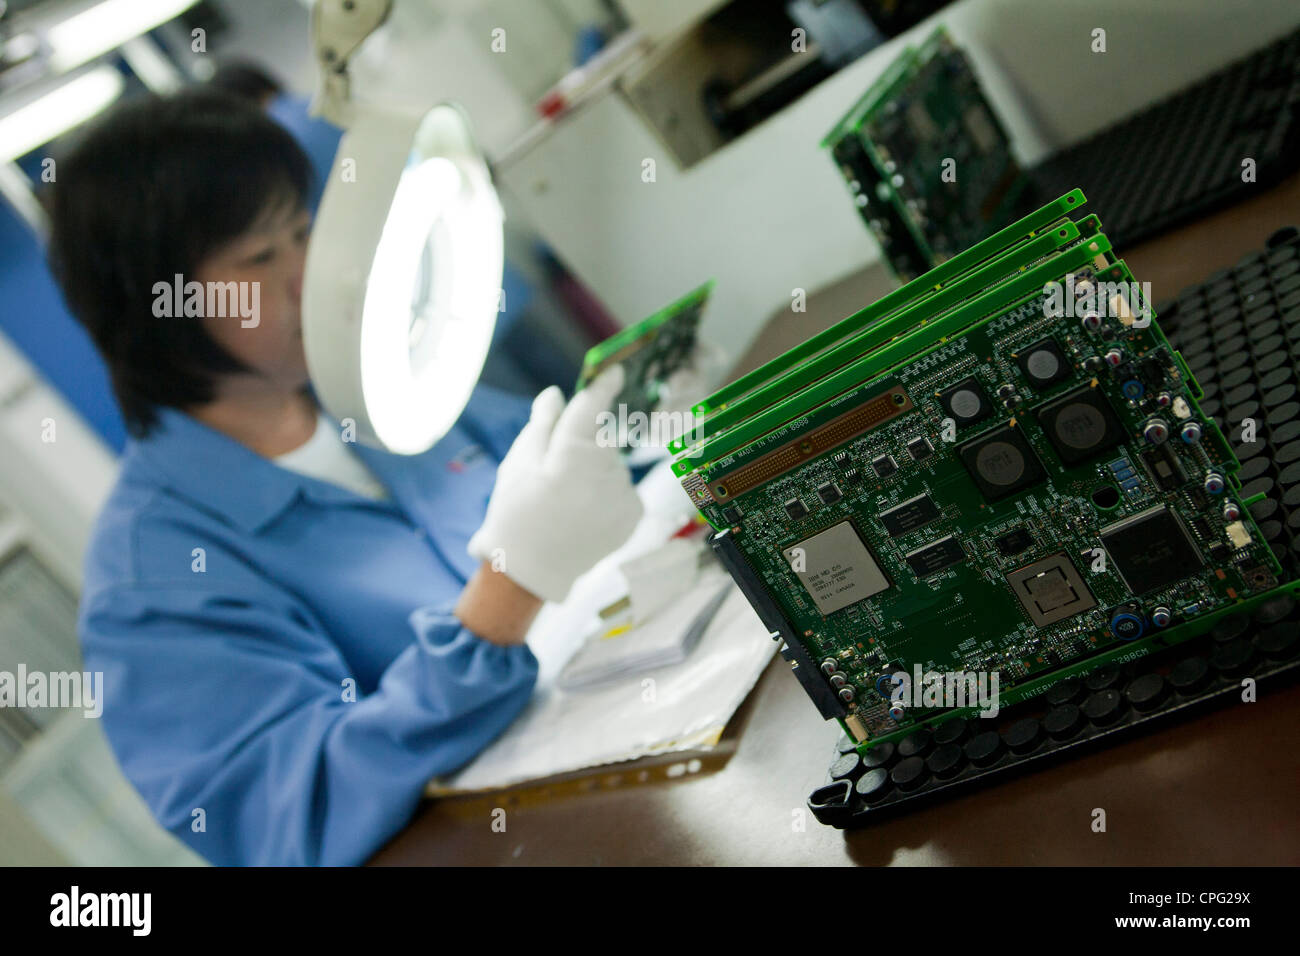 A Worker Inspects Printed Circuit Board On The Assembly Line At Low Cost Pcb Fabrication China Venture Corp Factory In Singapore